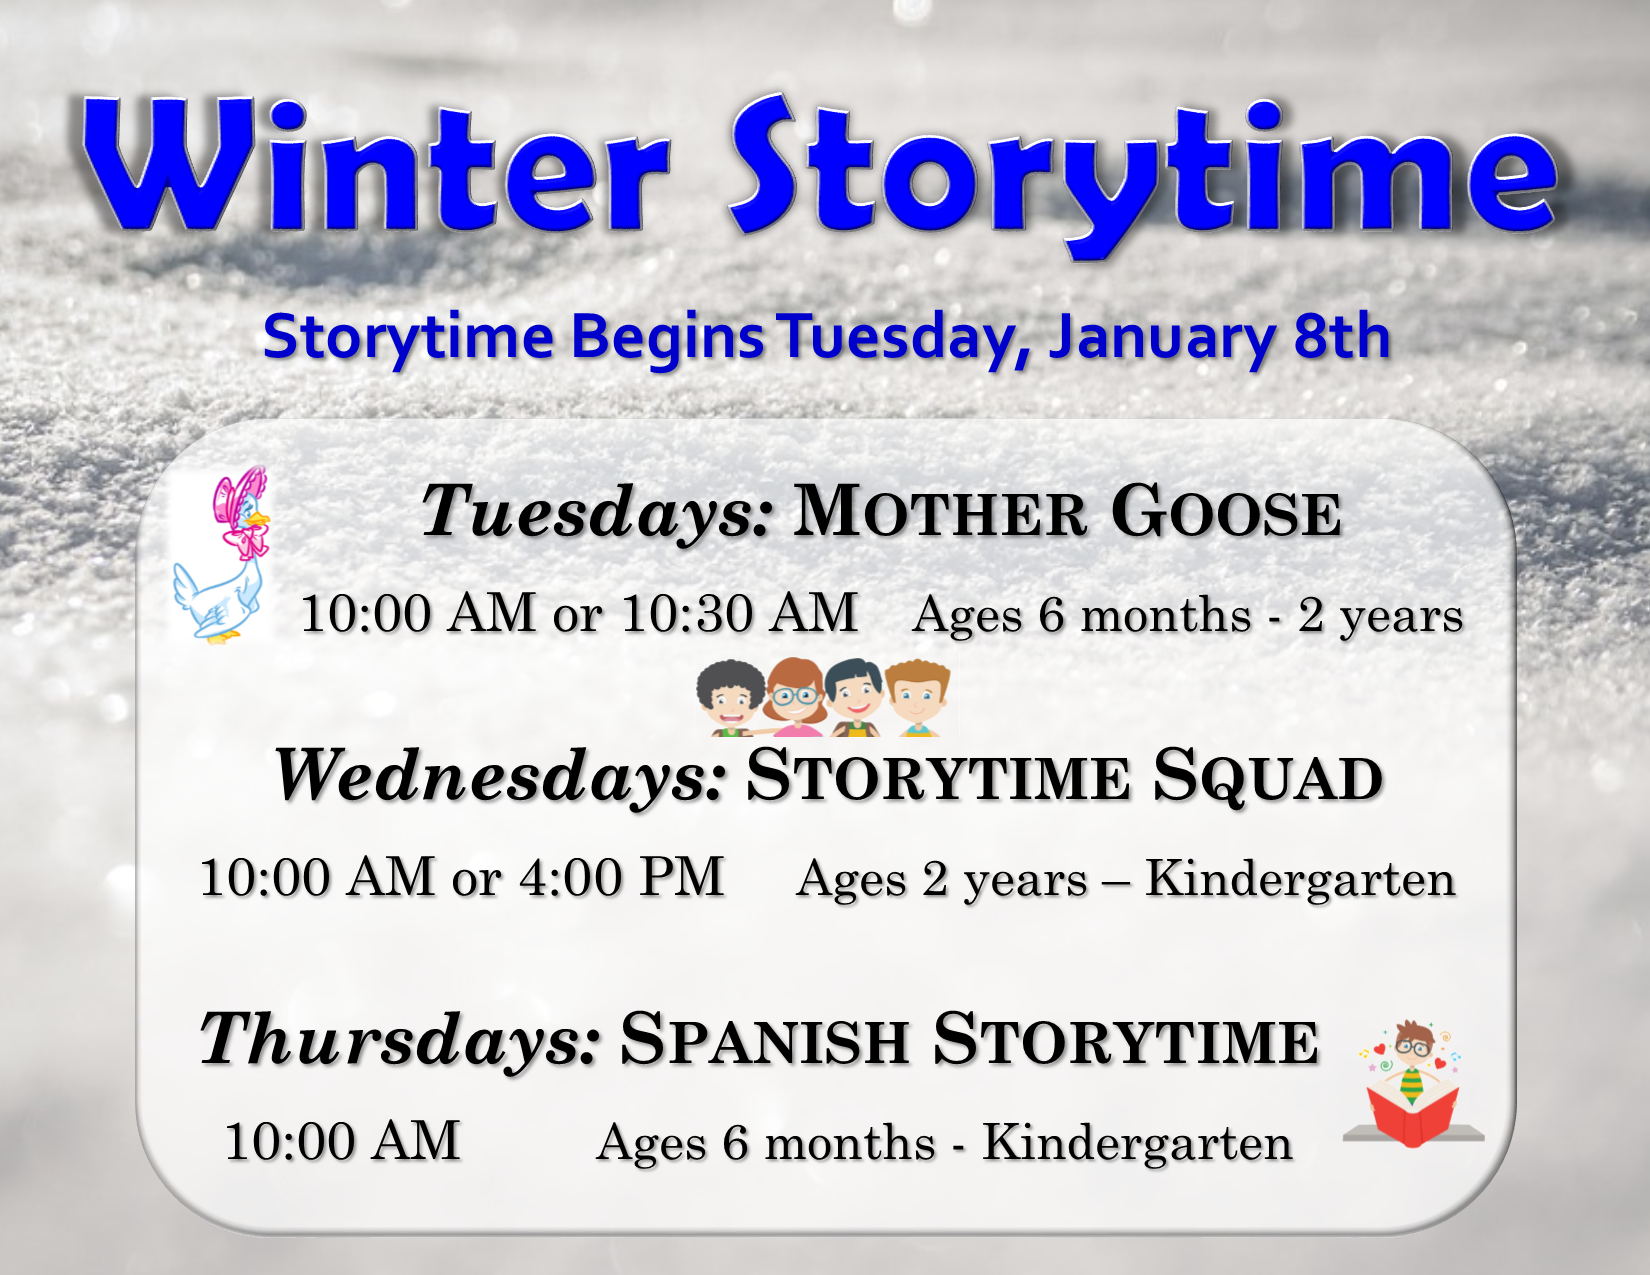 Mother Goose Morning - CANCELLED DUE TO INCLEMENT WEATHER